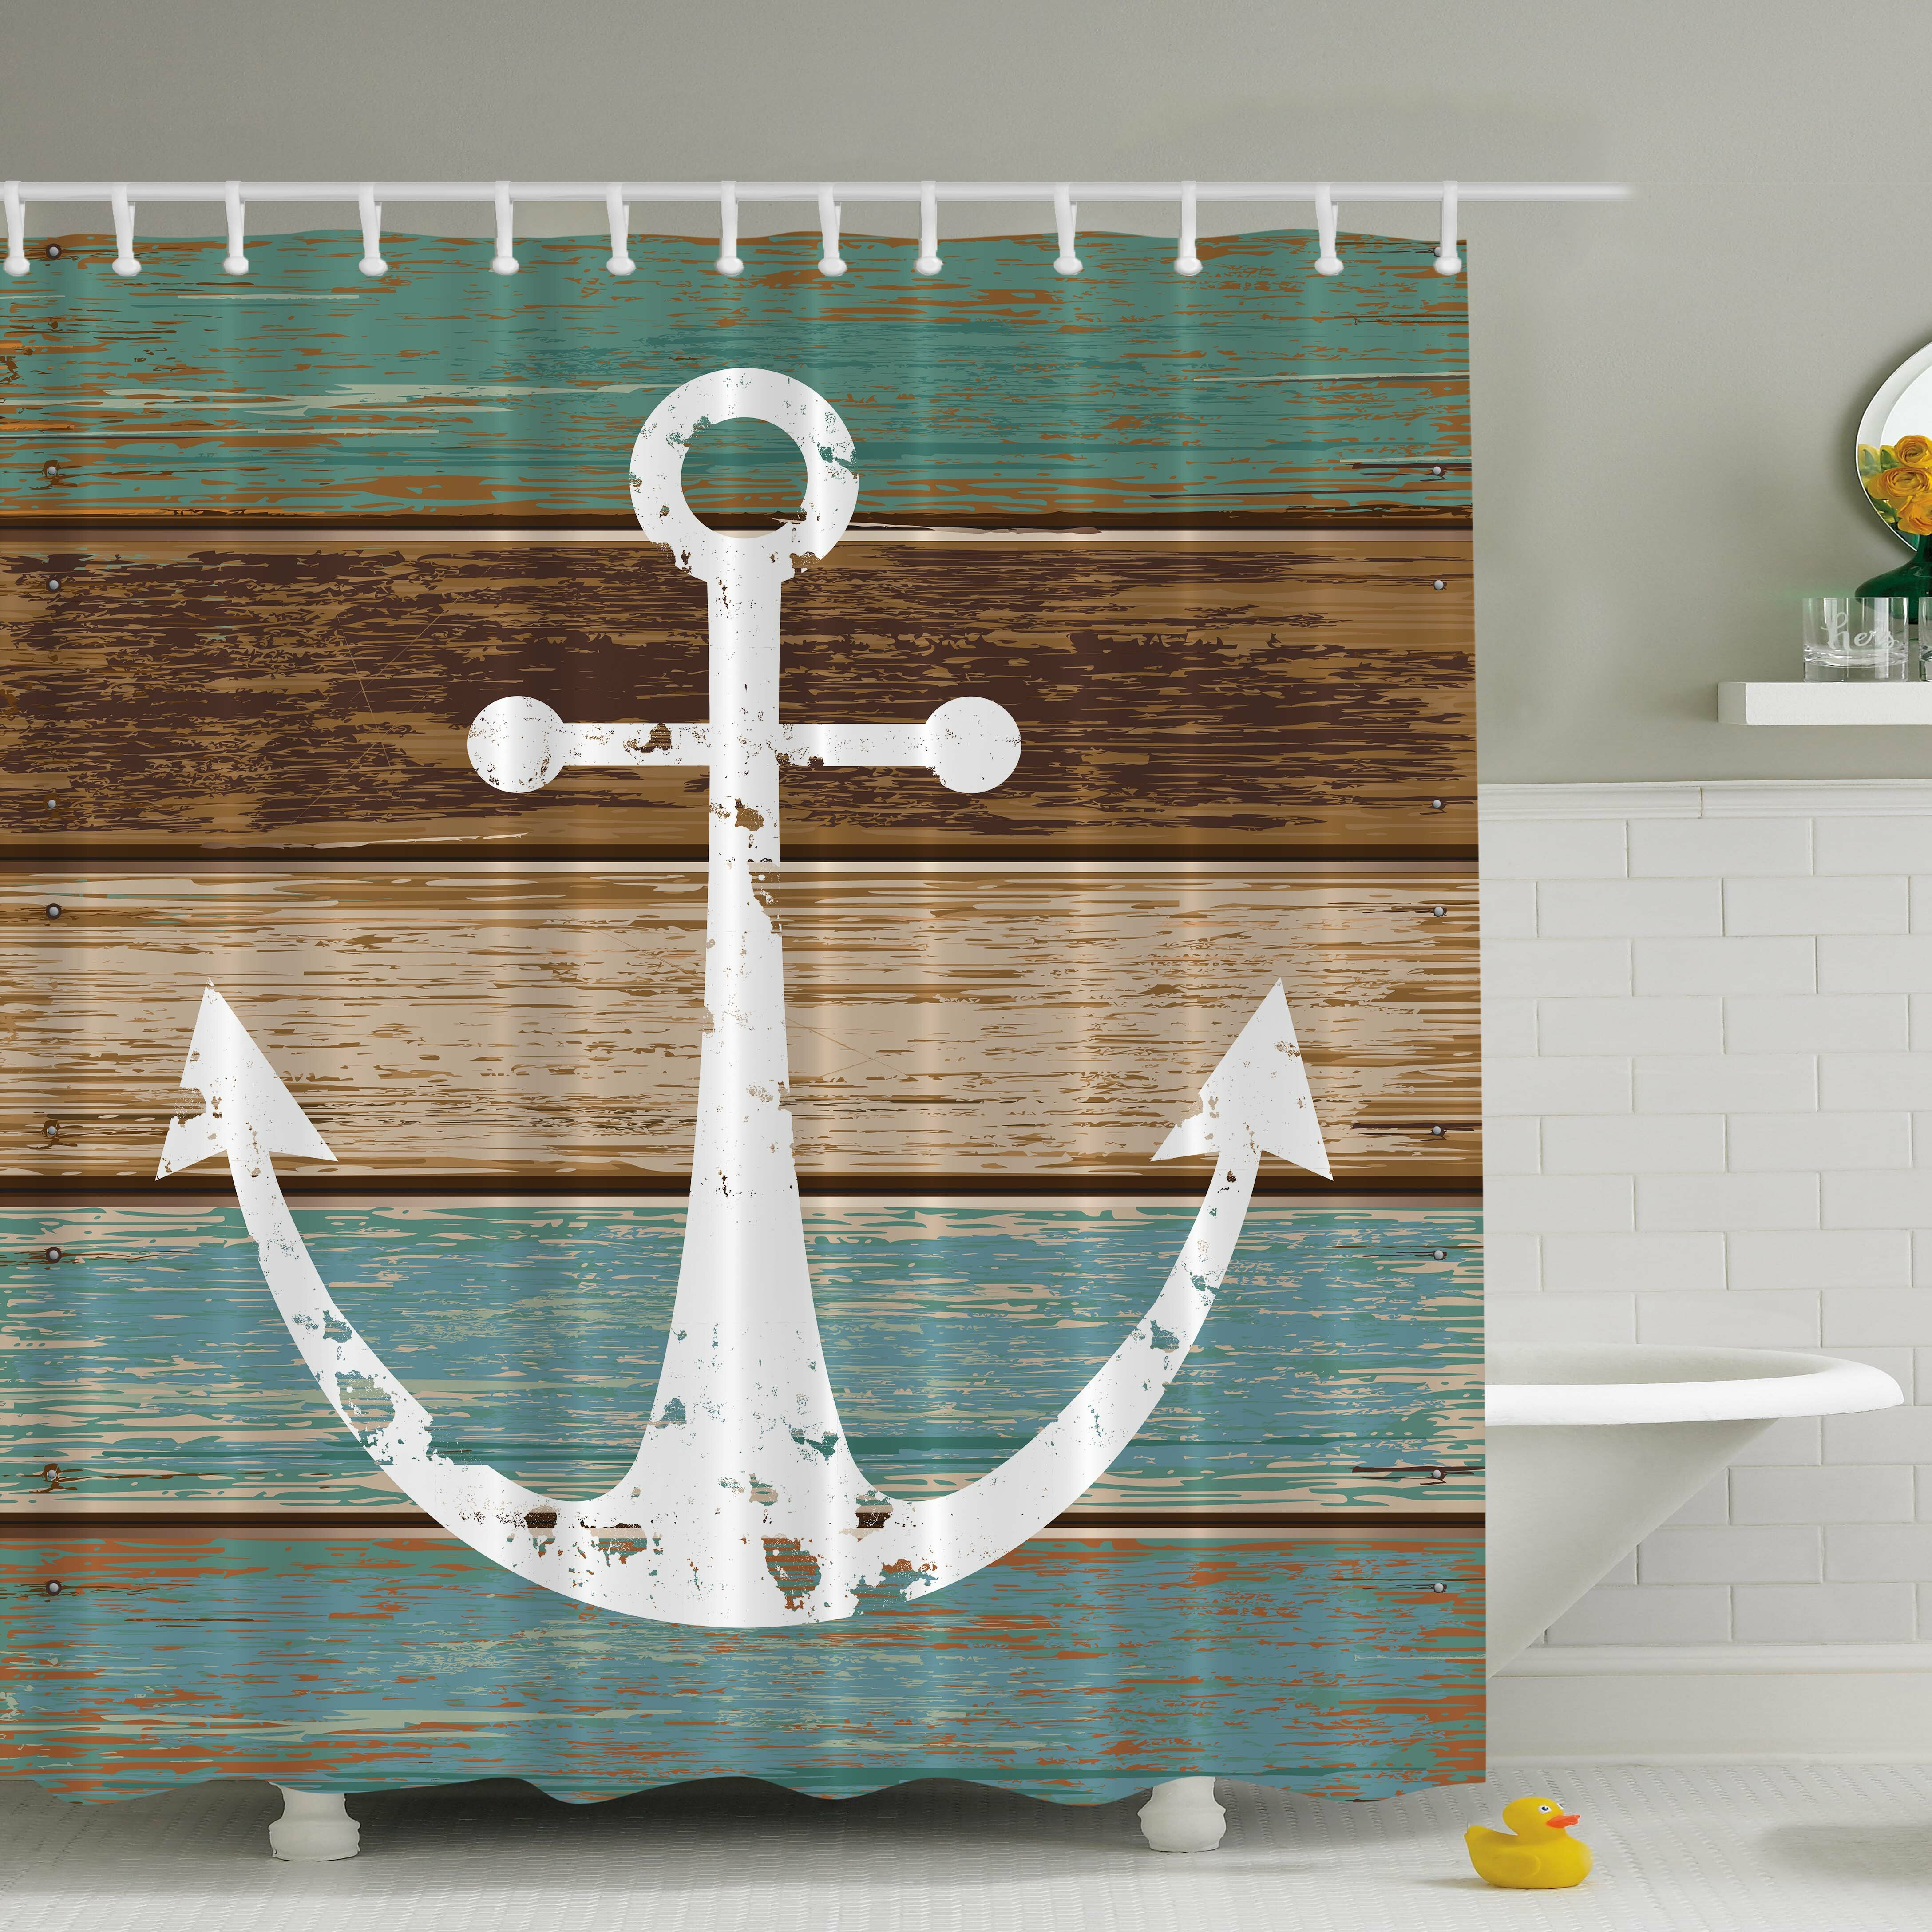 Green hookless shower curtain - Hookless Shower Curtains Amazon Turquoise And Brown Shower Curtain Ambesonne Anchor Print Shower Curtain